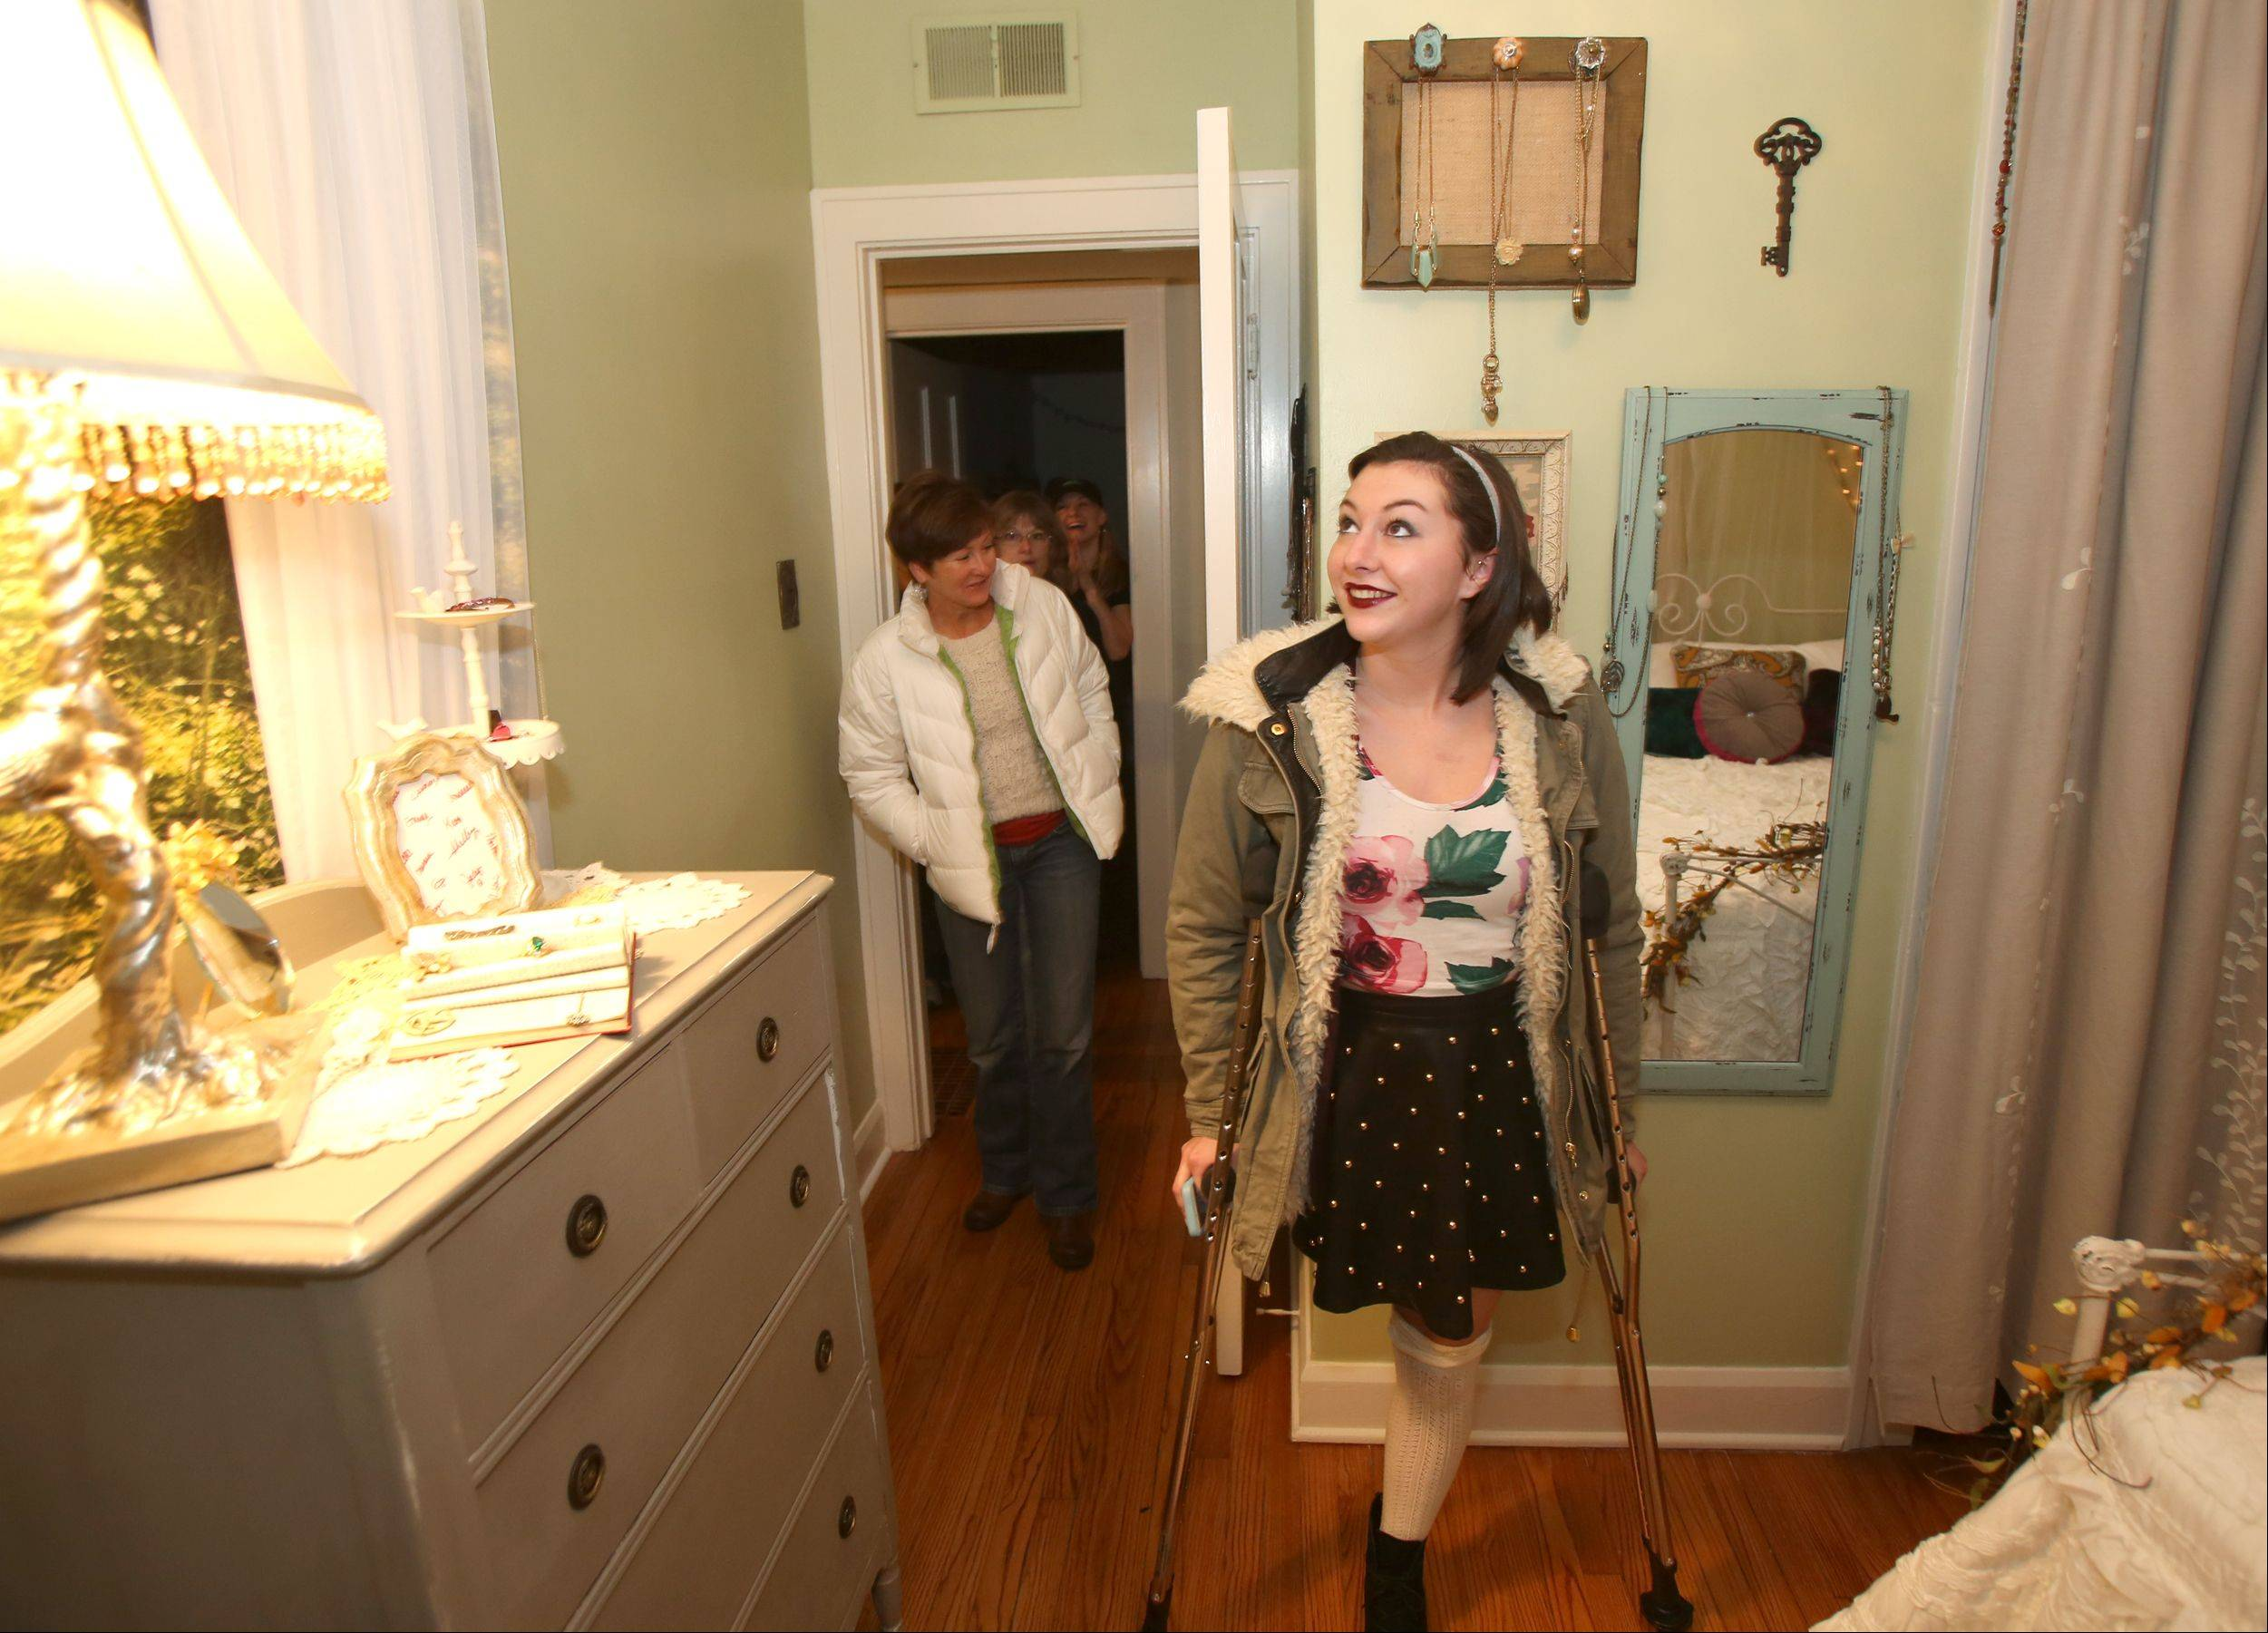 Genevieve Cipriano, 18, of Glen Ellyn looks over her bedroom, designed by Special Spaces Chicagoland, a Naperville nonprofit organization that creates dream bedrooms for children with life-threatening medical conditions.